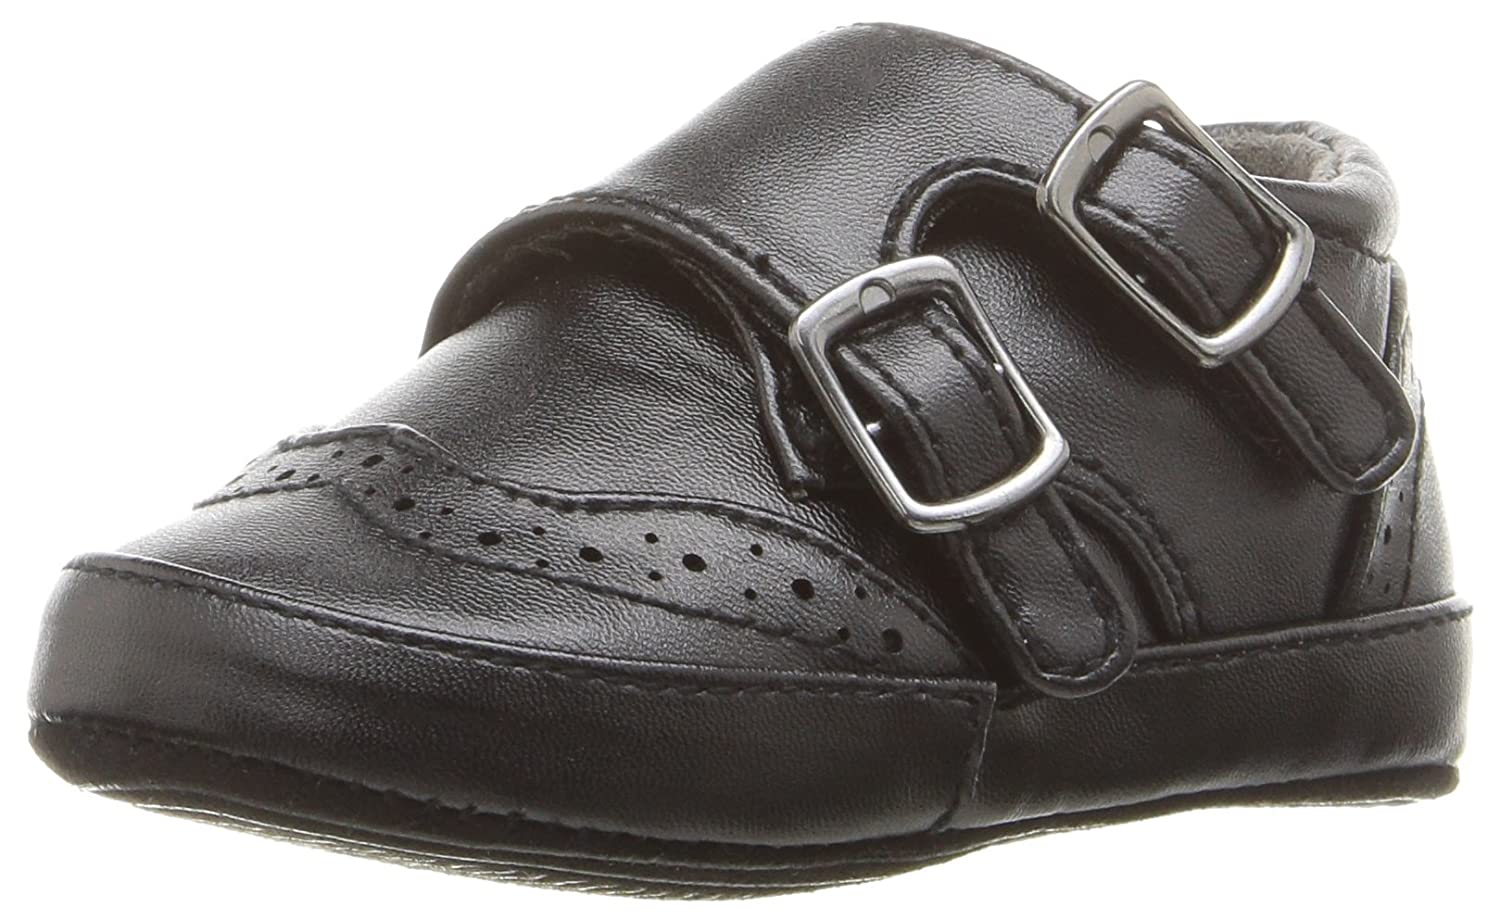 Kenneth Cole REACTION Baby Club Monk-K Oxford Black 1 M US Infant Baby Club Monk - K